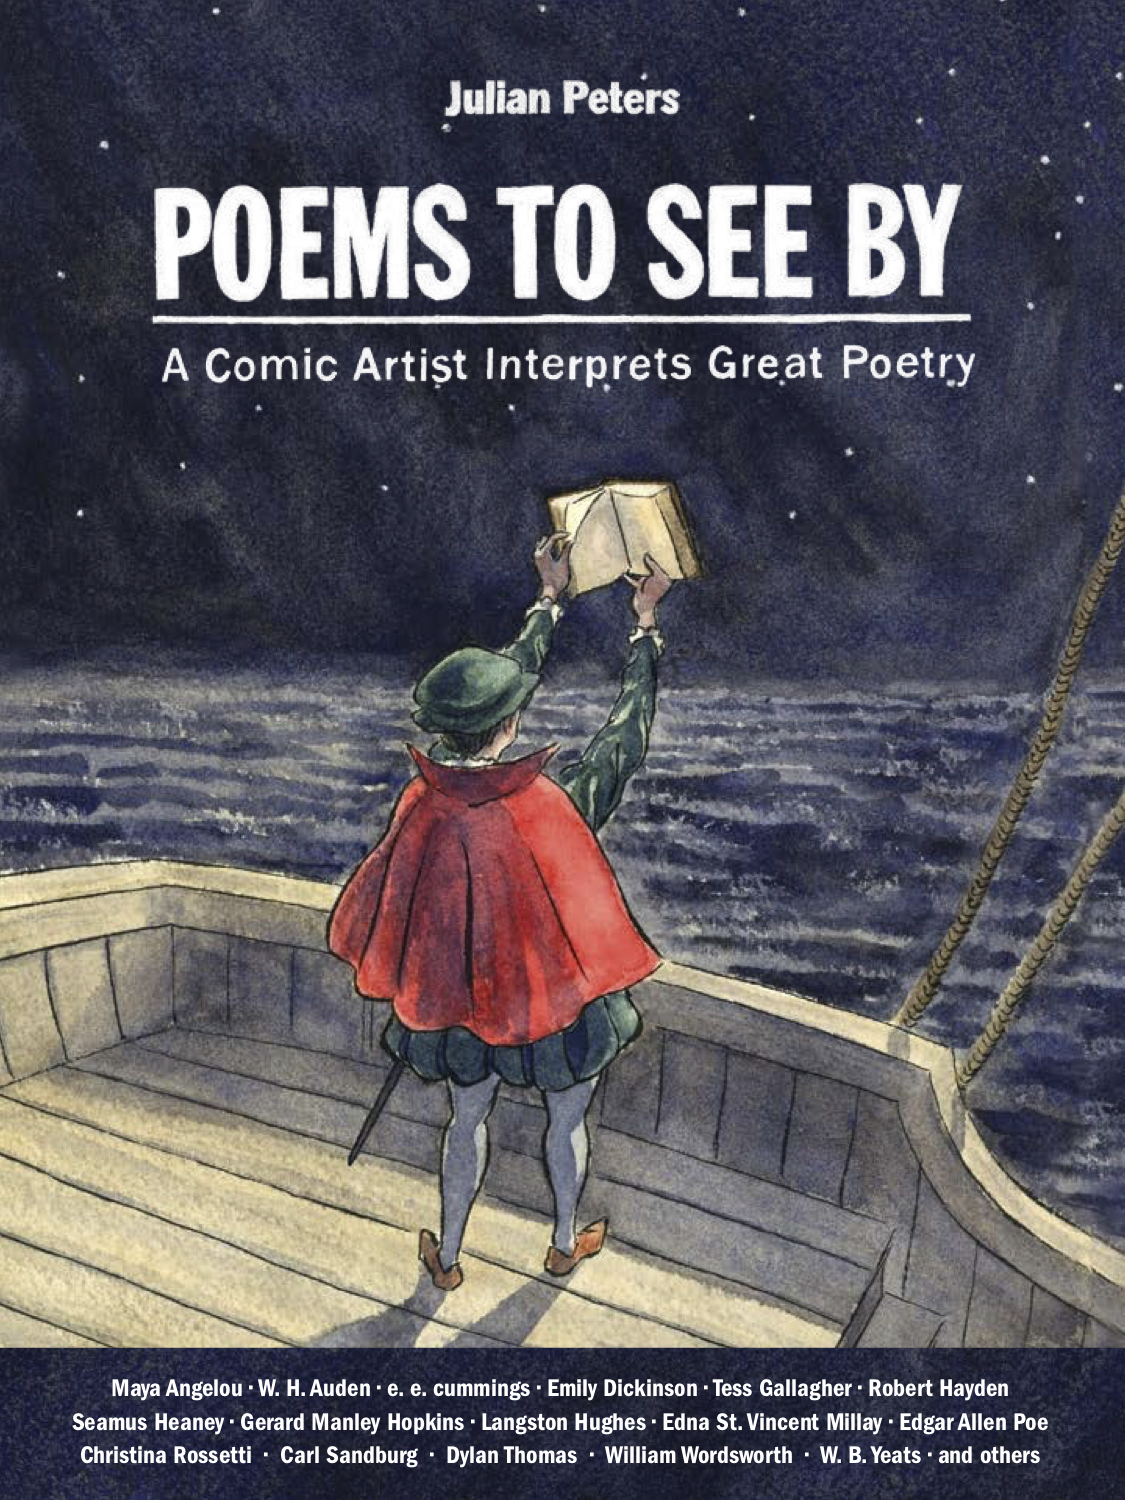 What happens when classical poetry and comic books combine?